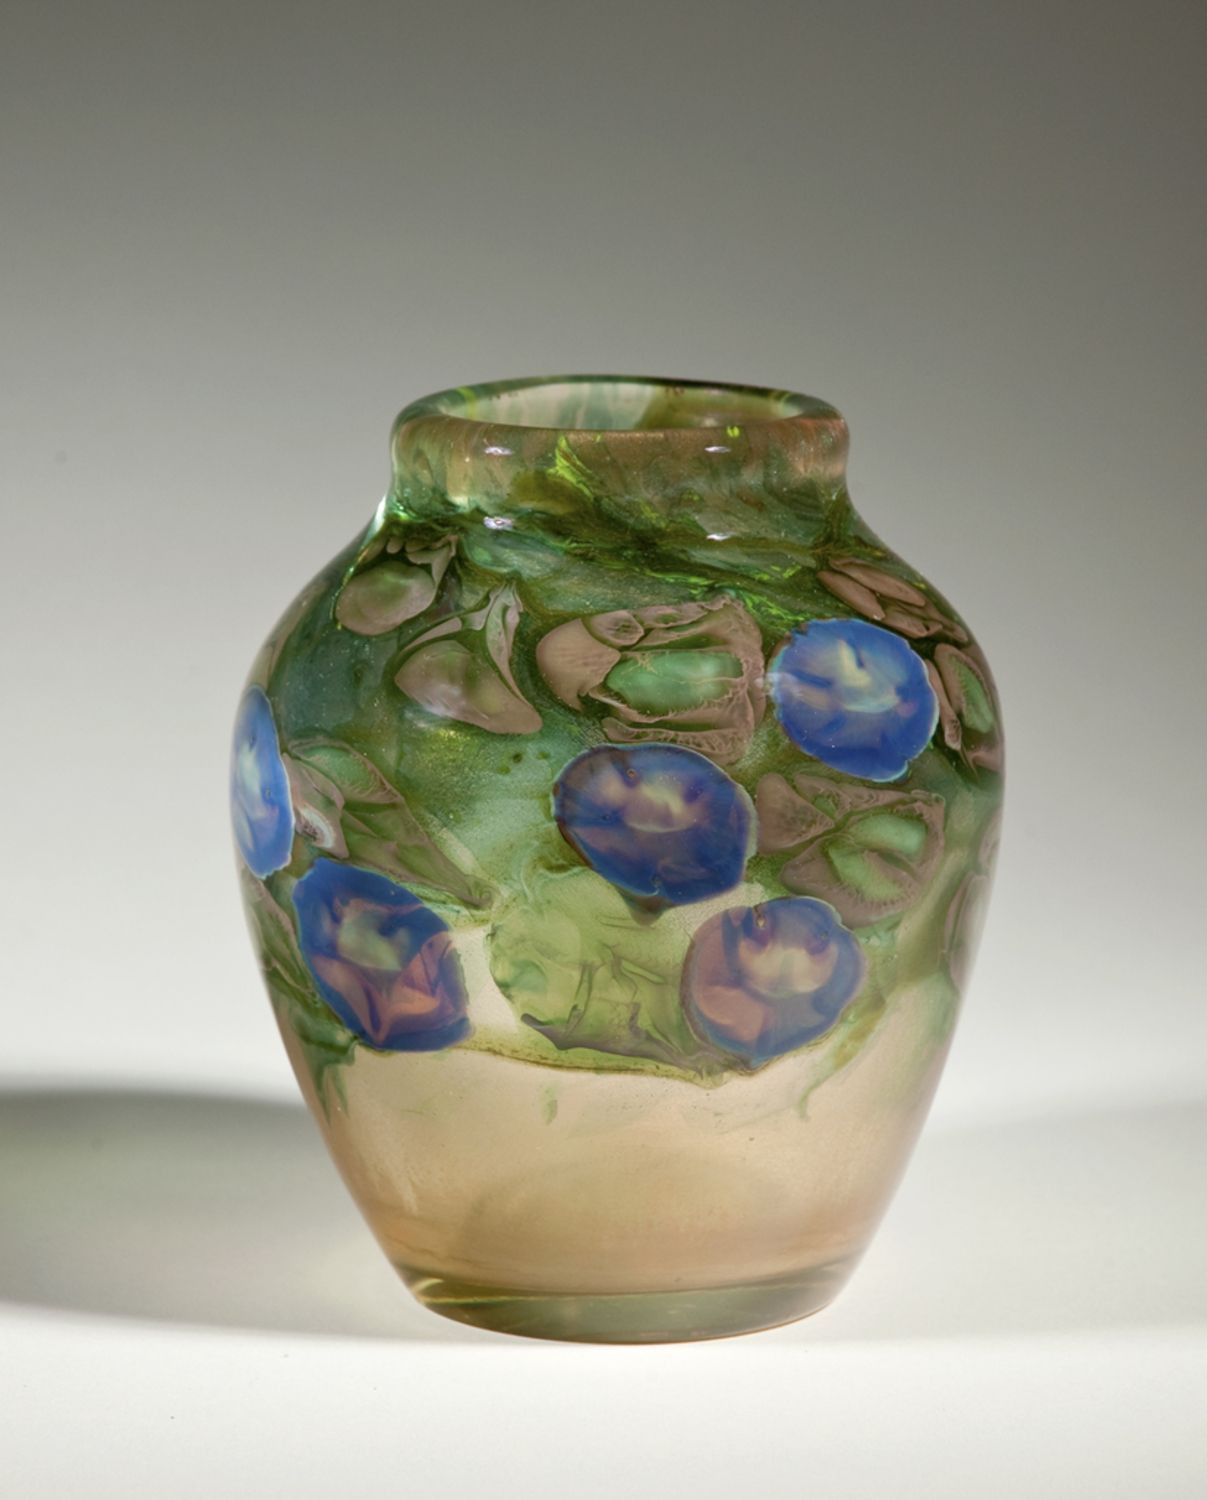 Tiffany and Co Glass Vase Of New Tiffany Art Glass Exhibit to Open at Morse Museum Art News within New Tiffany Art Glass Exhibit to Open at Morse Museum